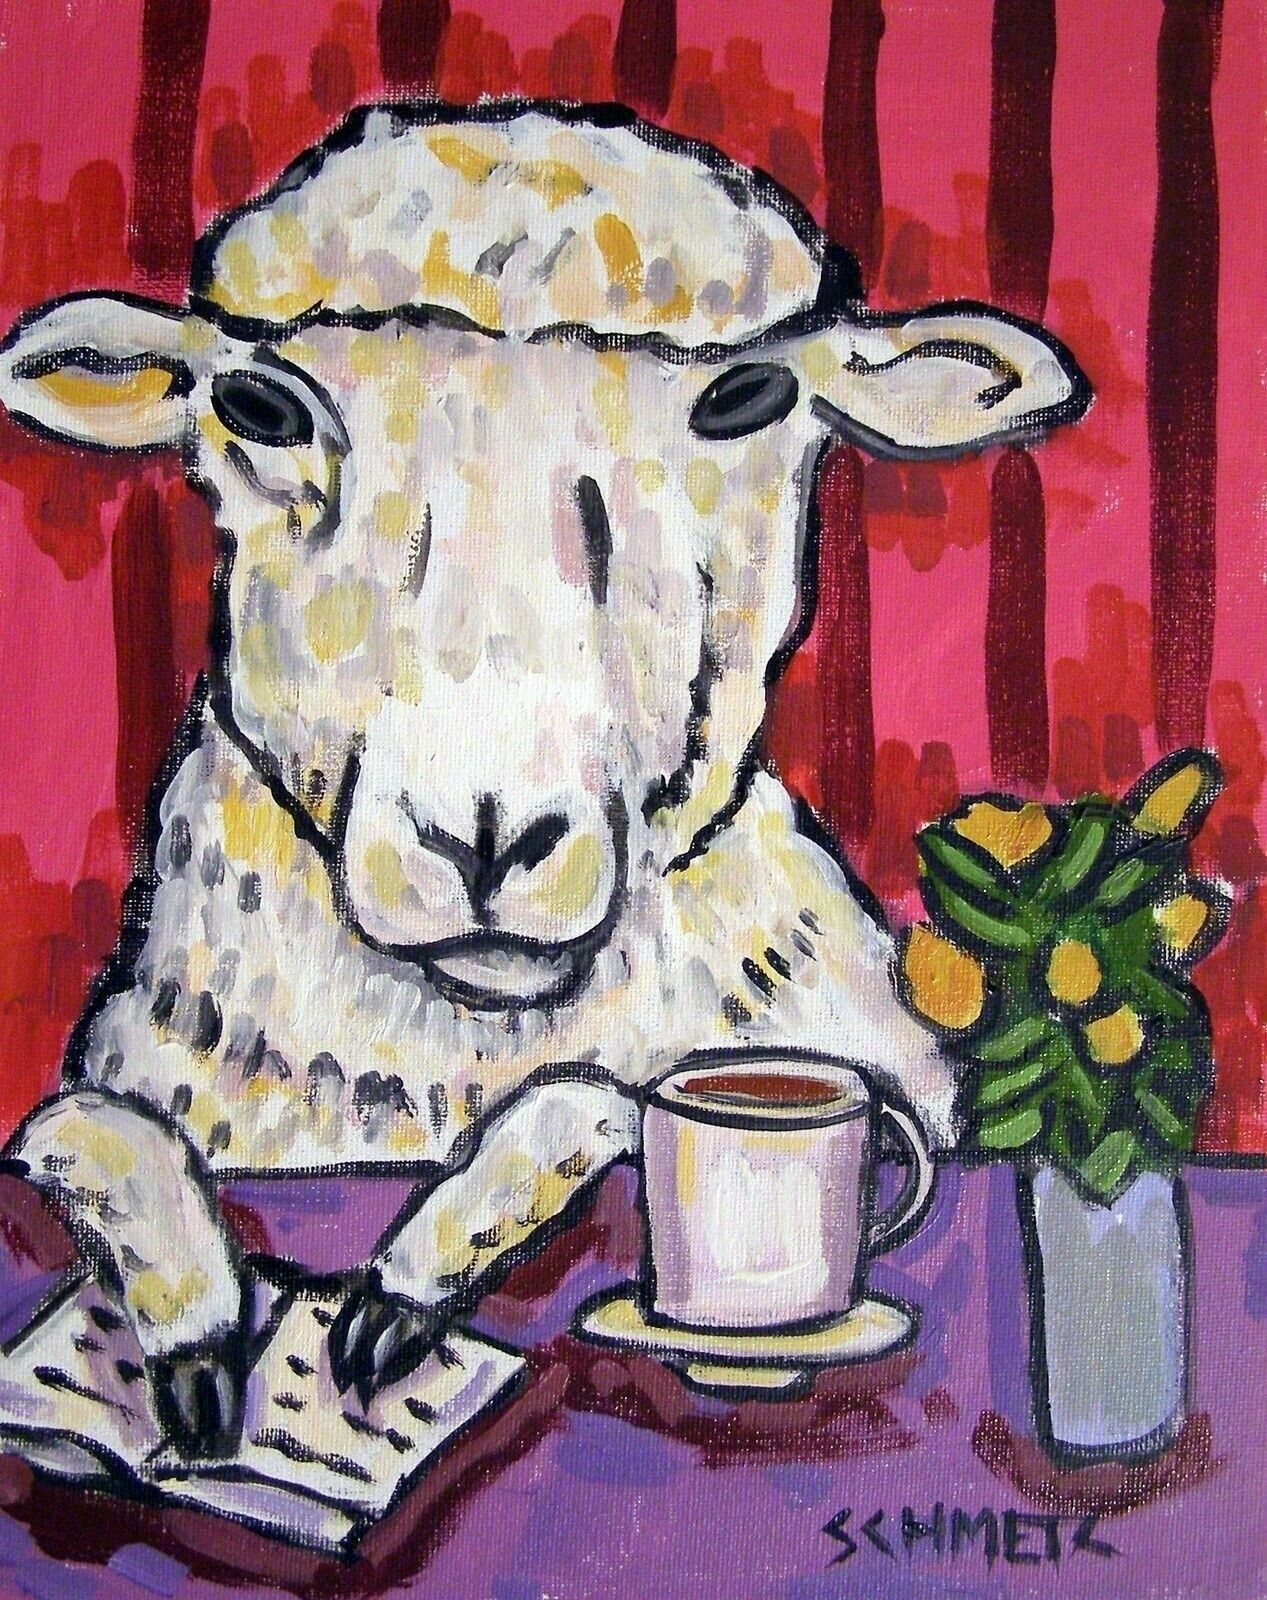 sheep art  folk Art PRINT 8x10 JSCHMETZ modern gift giclee coffee pop art